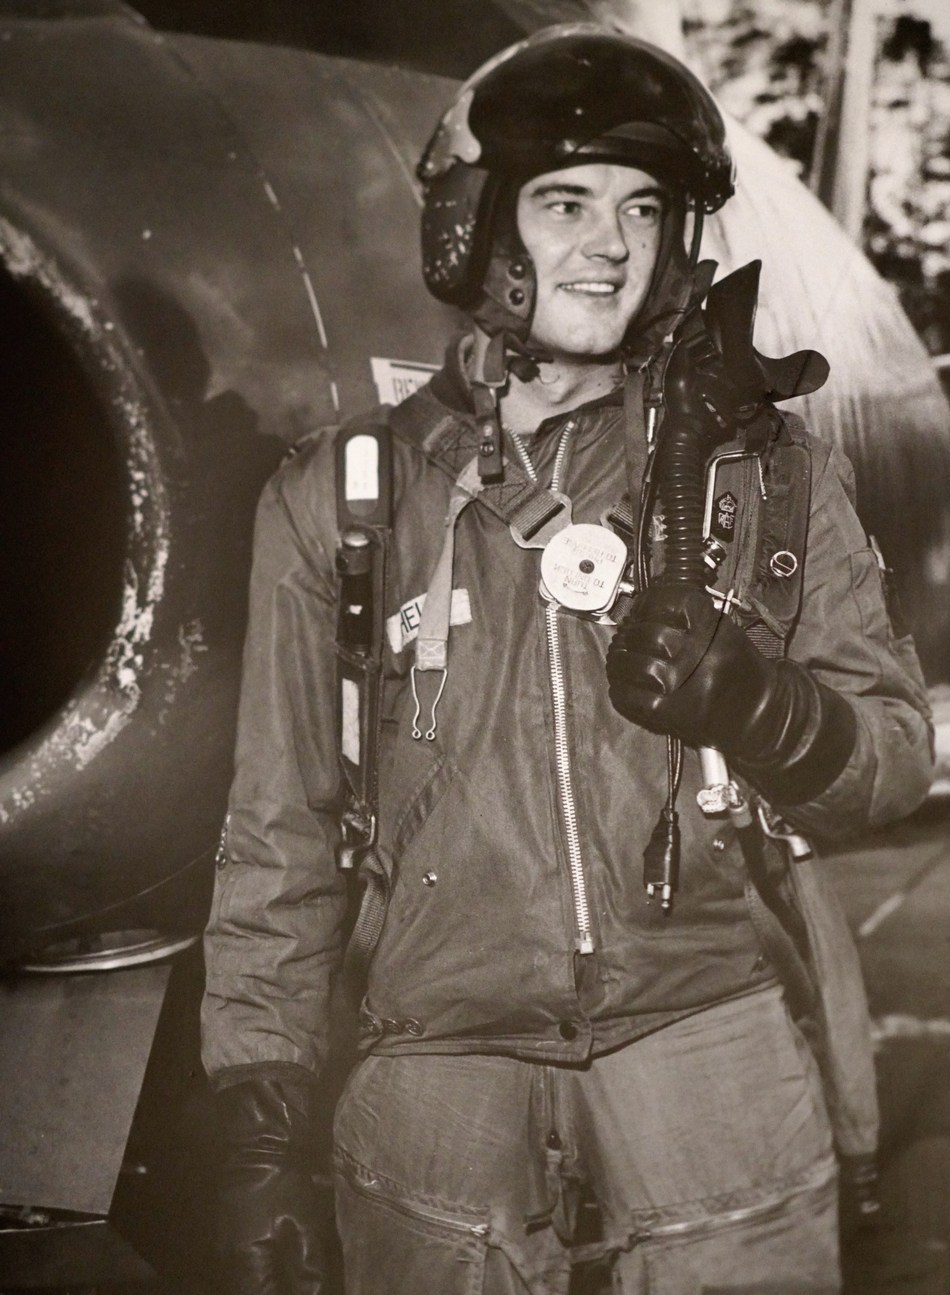 RCAF fighter pilot Gordon Helm patrolled the Soviet Bloc border during the Cold War (CNW Group/Chartwell Retirement Residences)